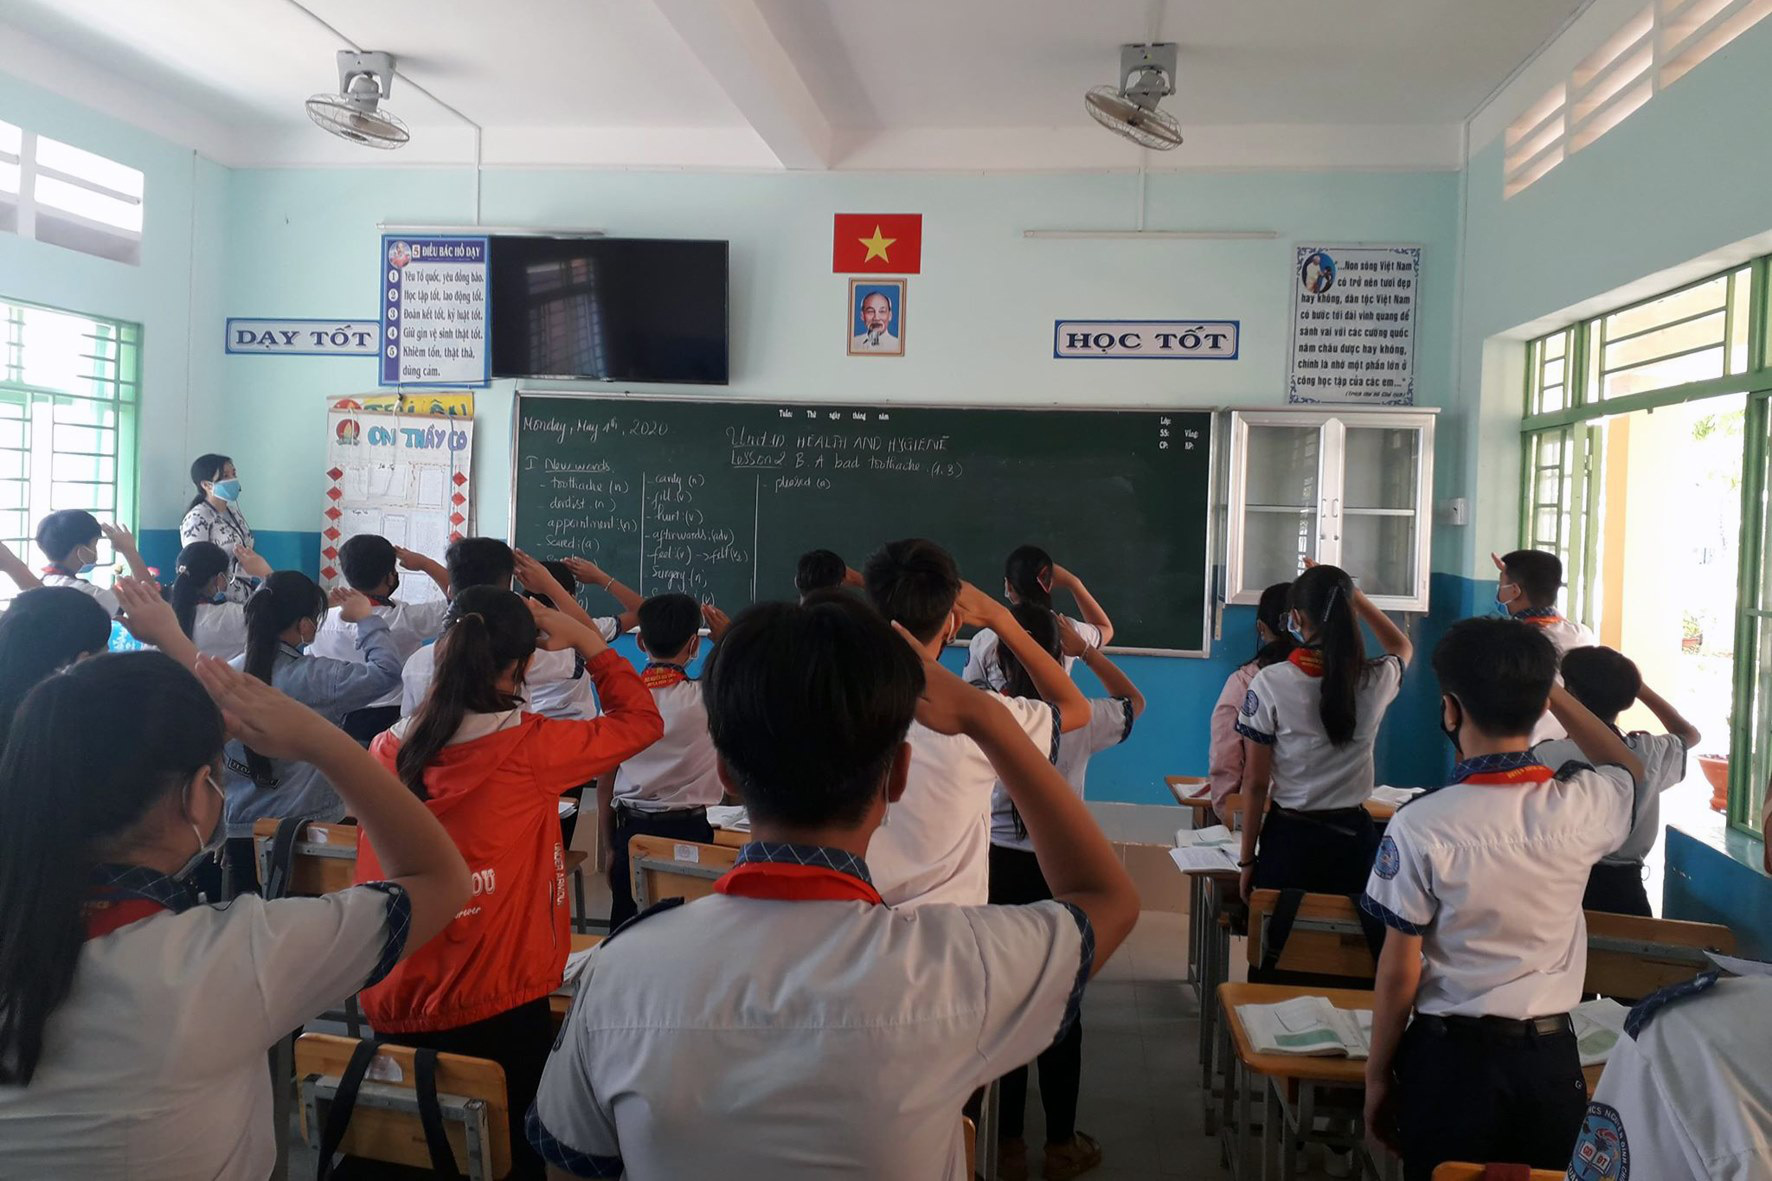 Students at a middle school in Dong Nai Province attend the flag-raising ceremony inside the classroom instead of the school yard on May 4, 2020. Photo: H.S. / Tuoi Tre